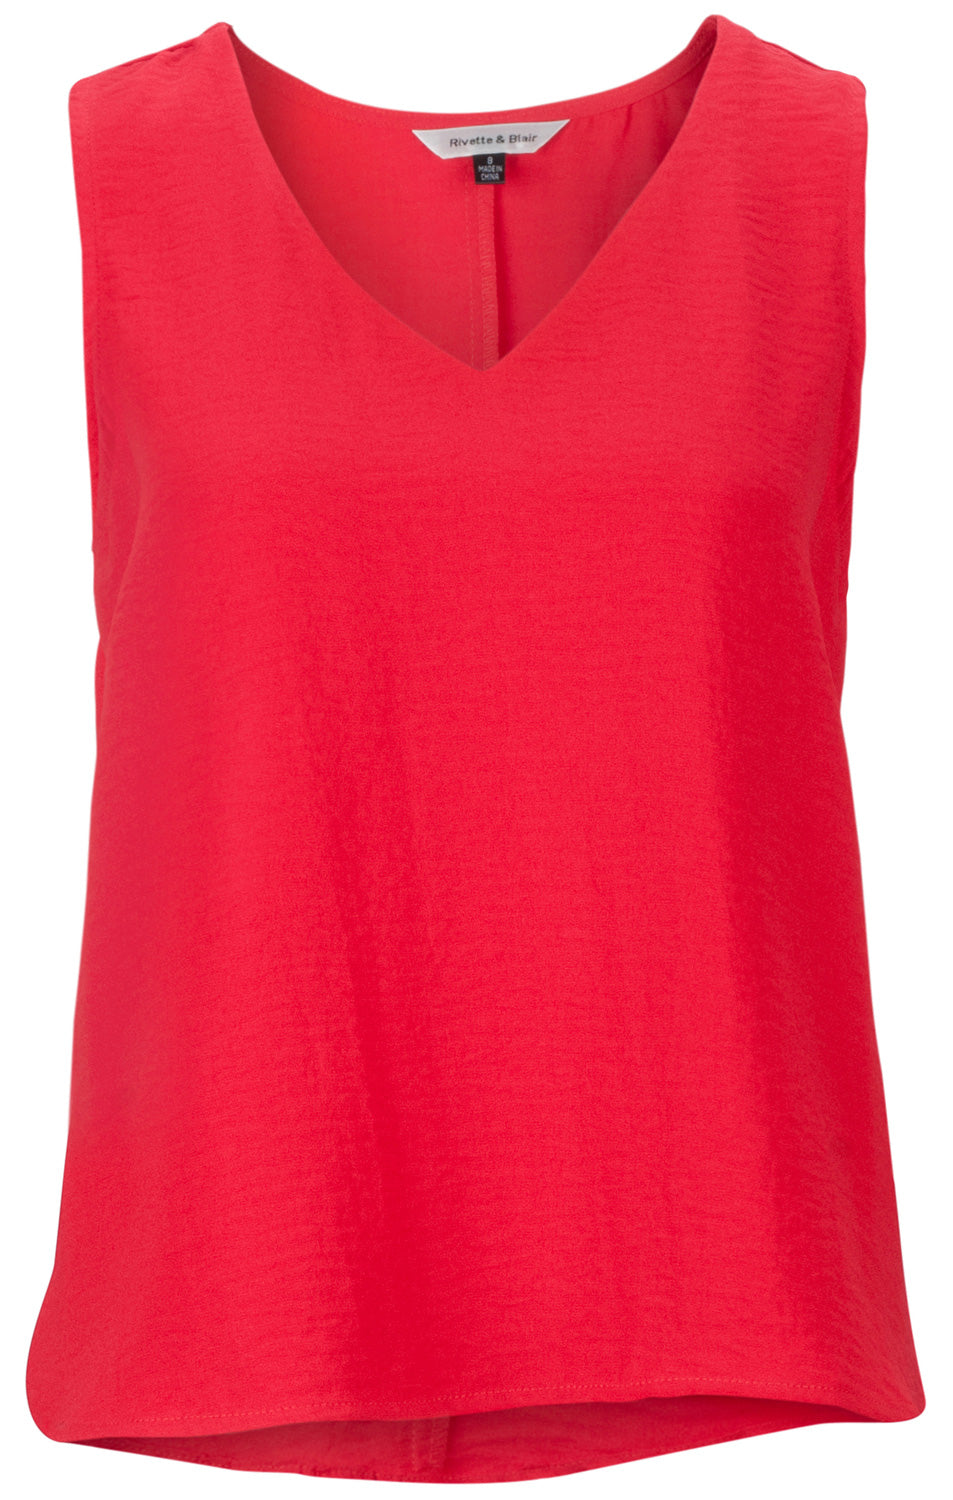 9ed9ae4643bc7 Red V Neck Shell Top - Rivette and Blair